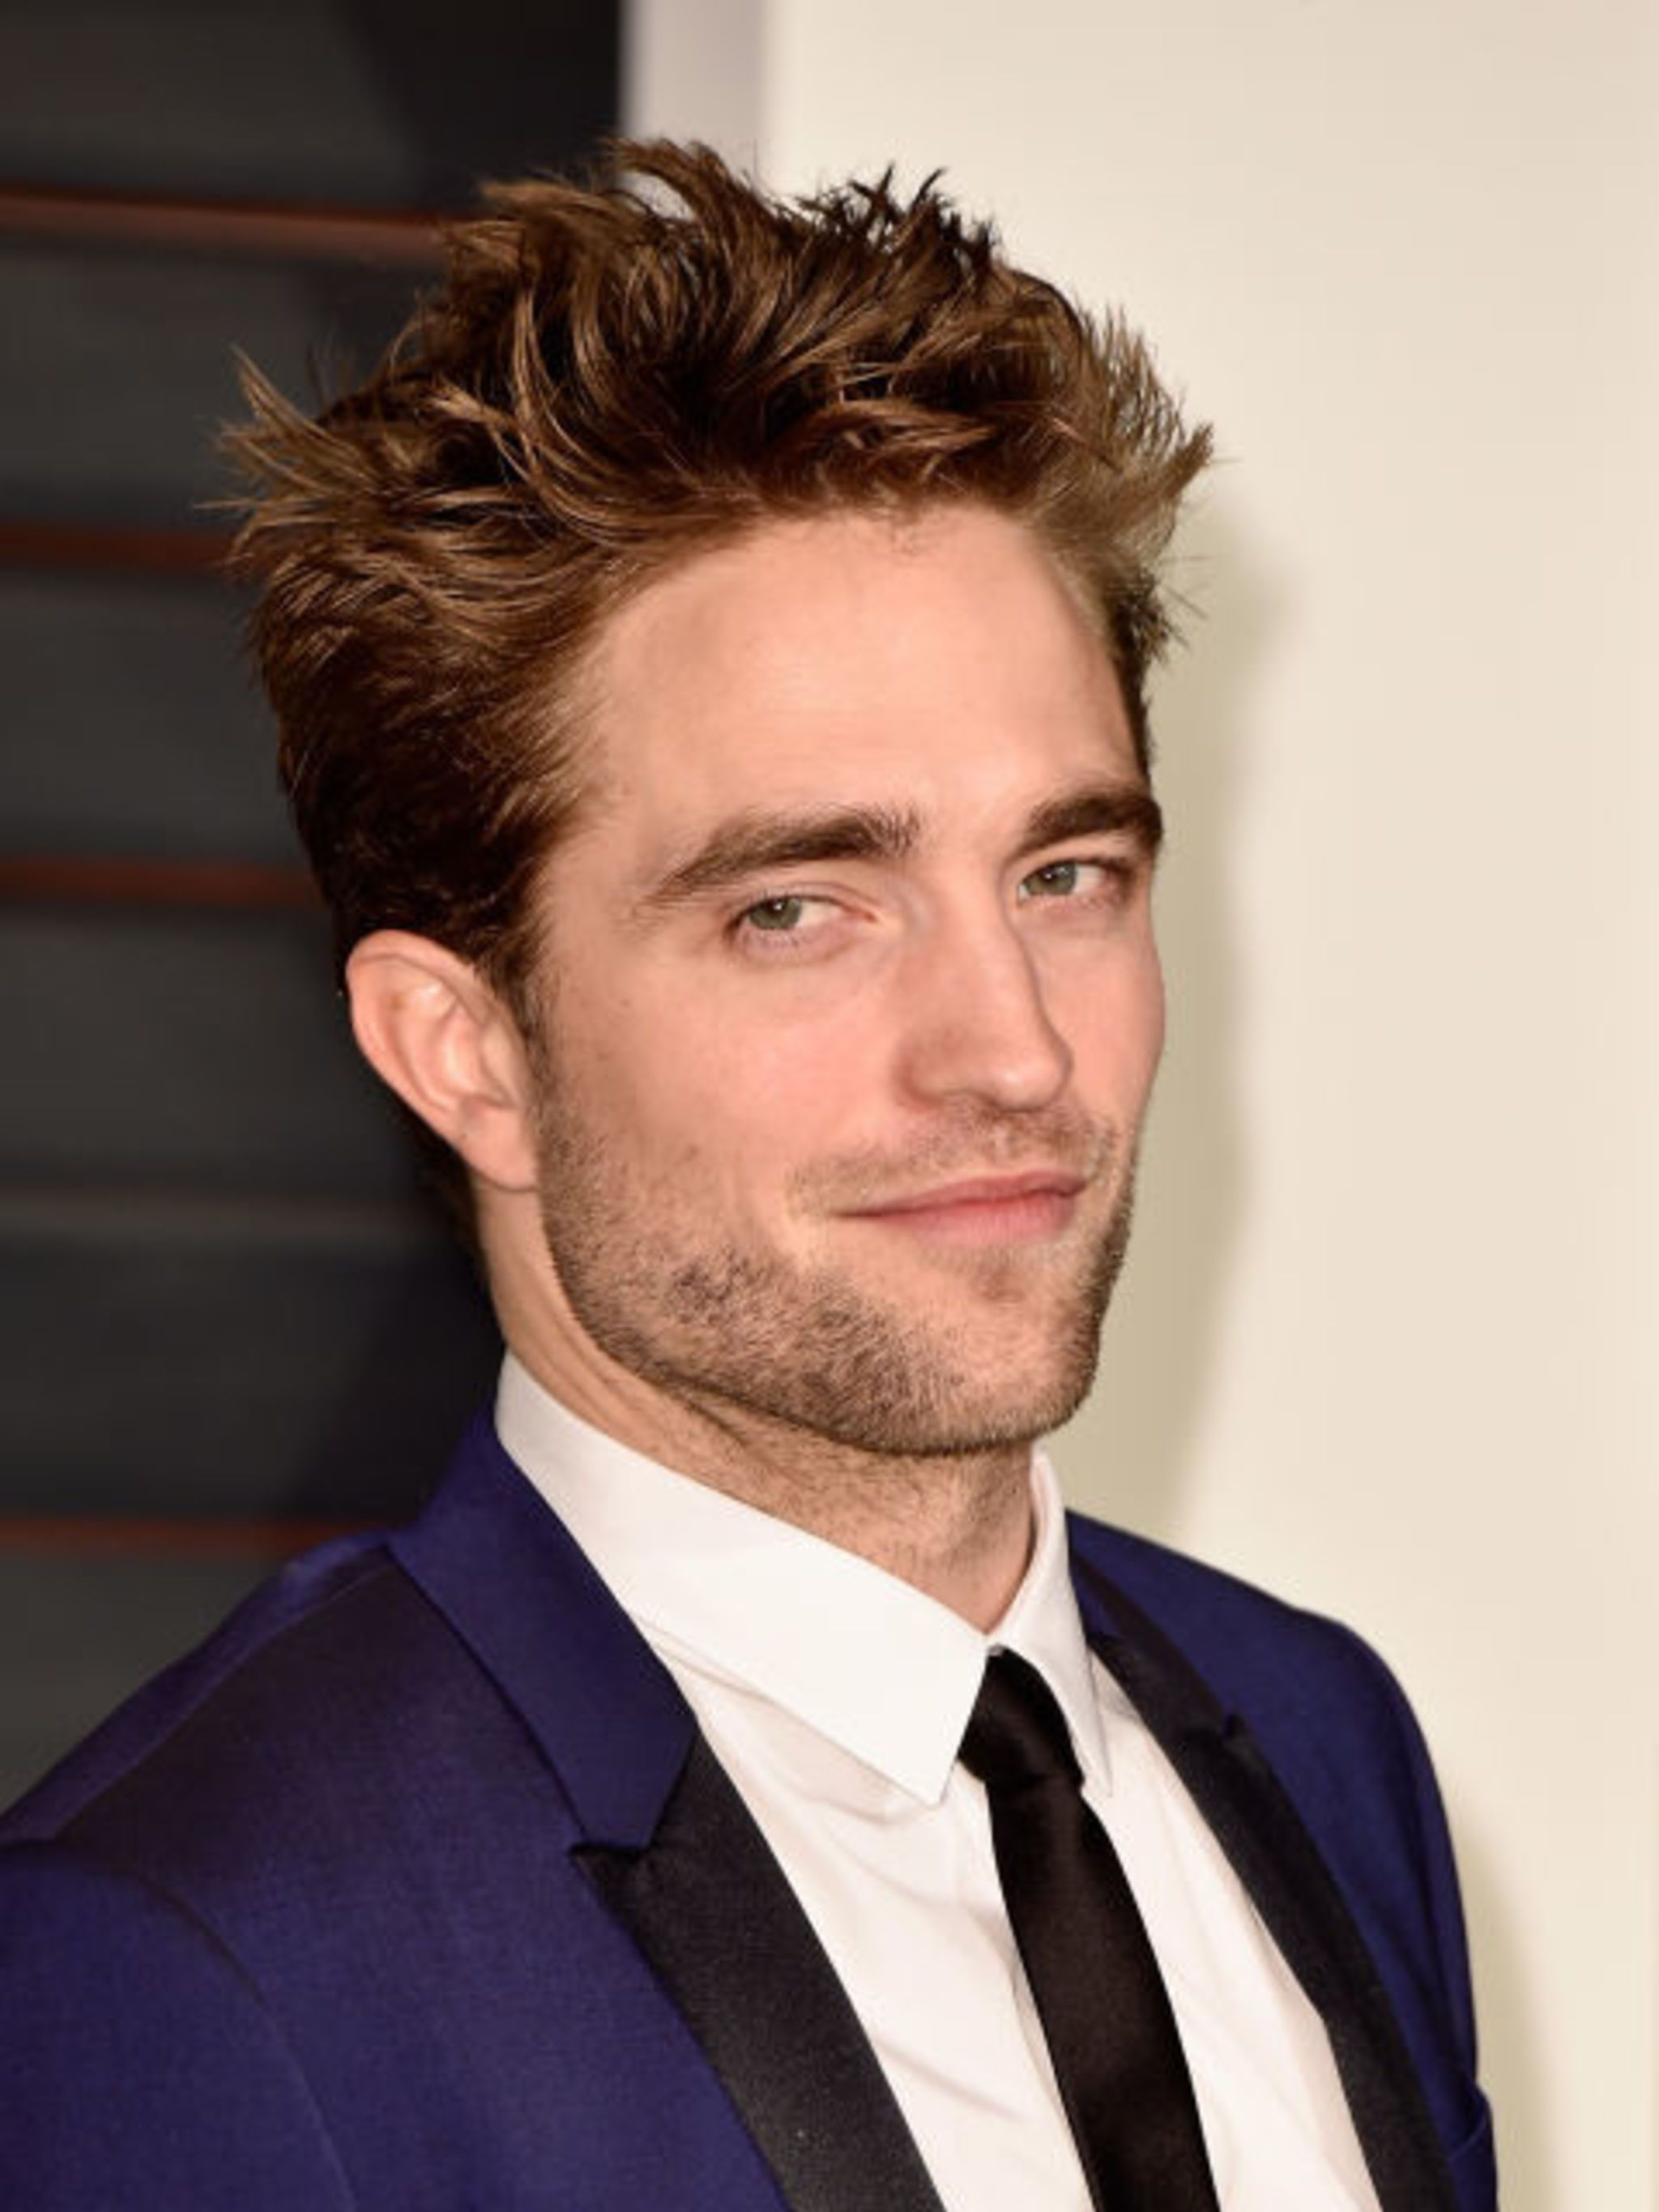 """<p><strong>ROBERT PATTINSON HATES EDWARD AND 'TWILIGHT' IN GENERAL</strong></p>  <p>Robert Pattinson hates<em>Twilight</em>, hates Edward, and hates how everyone likes both. (P.S. There's even<a href=""""http://robertpattinsonhatingtwilight.tumblr.com/"""" st"""